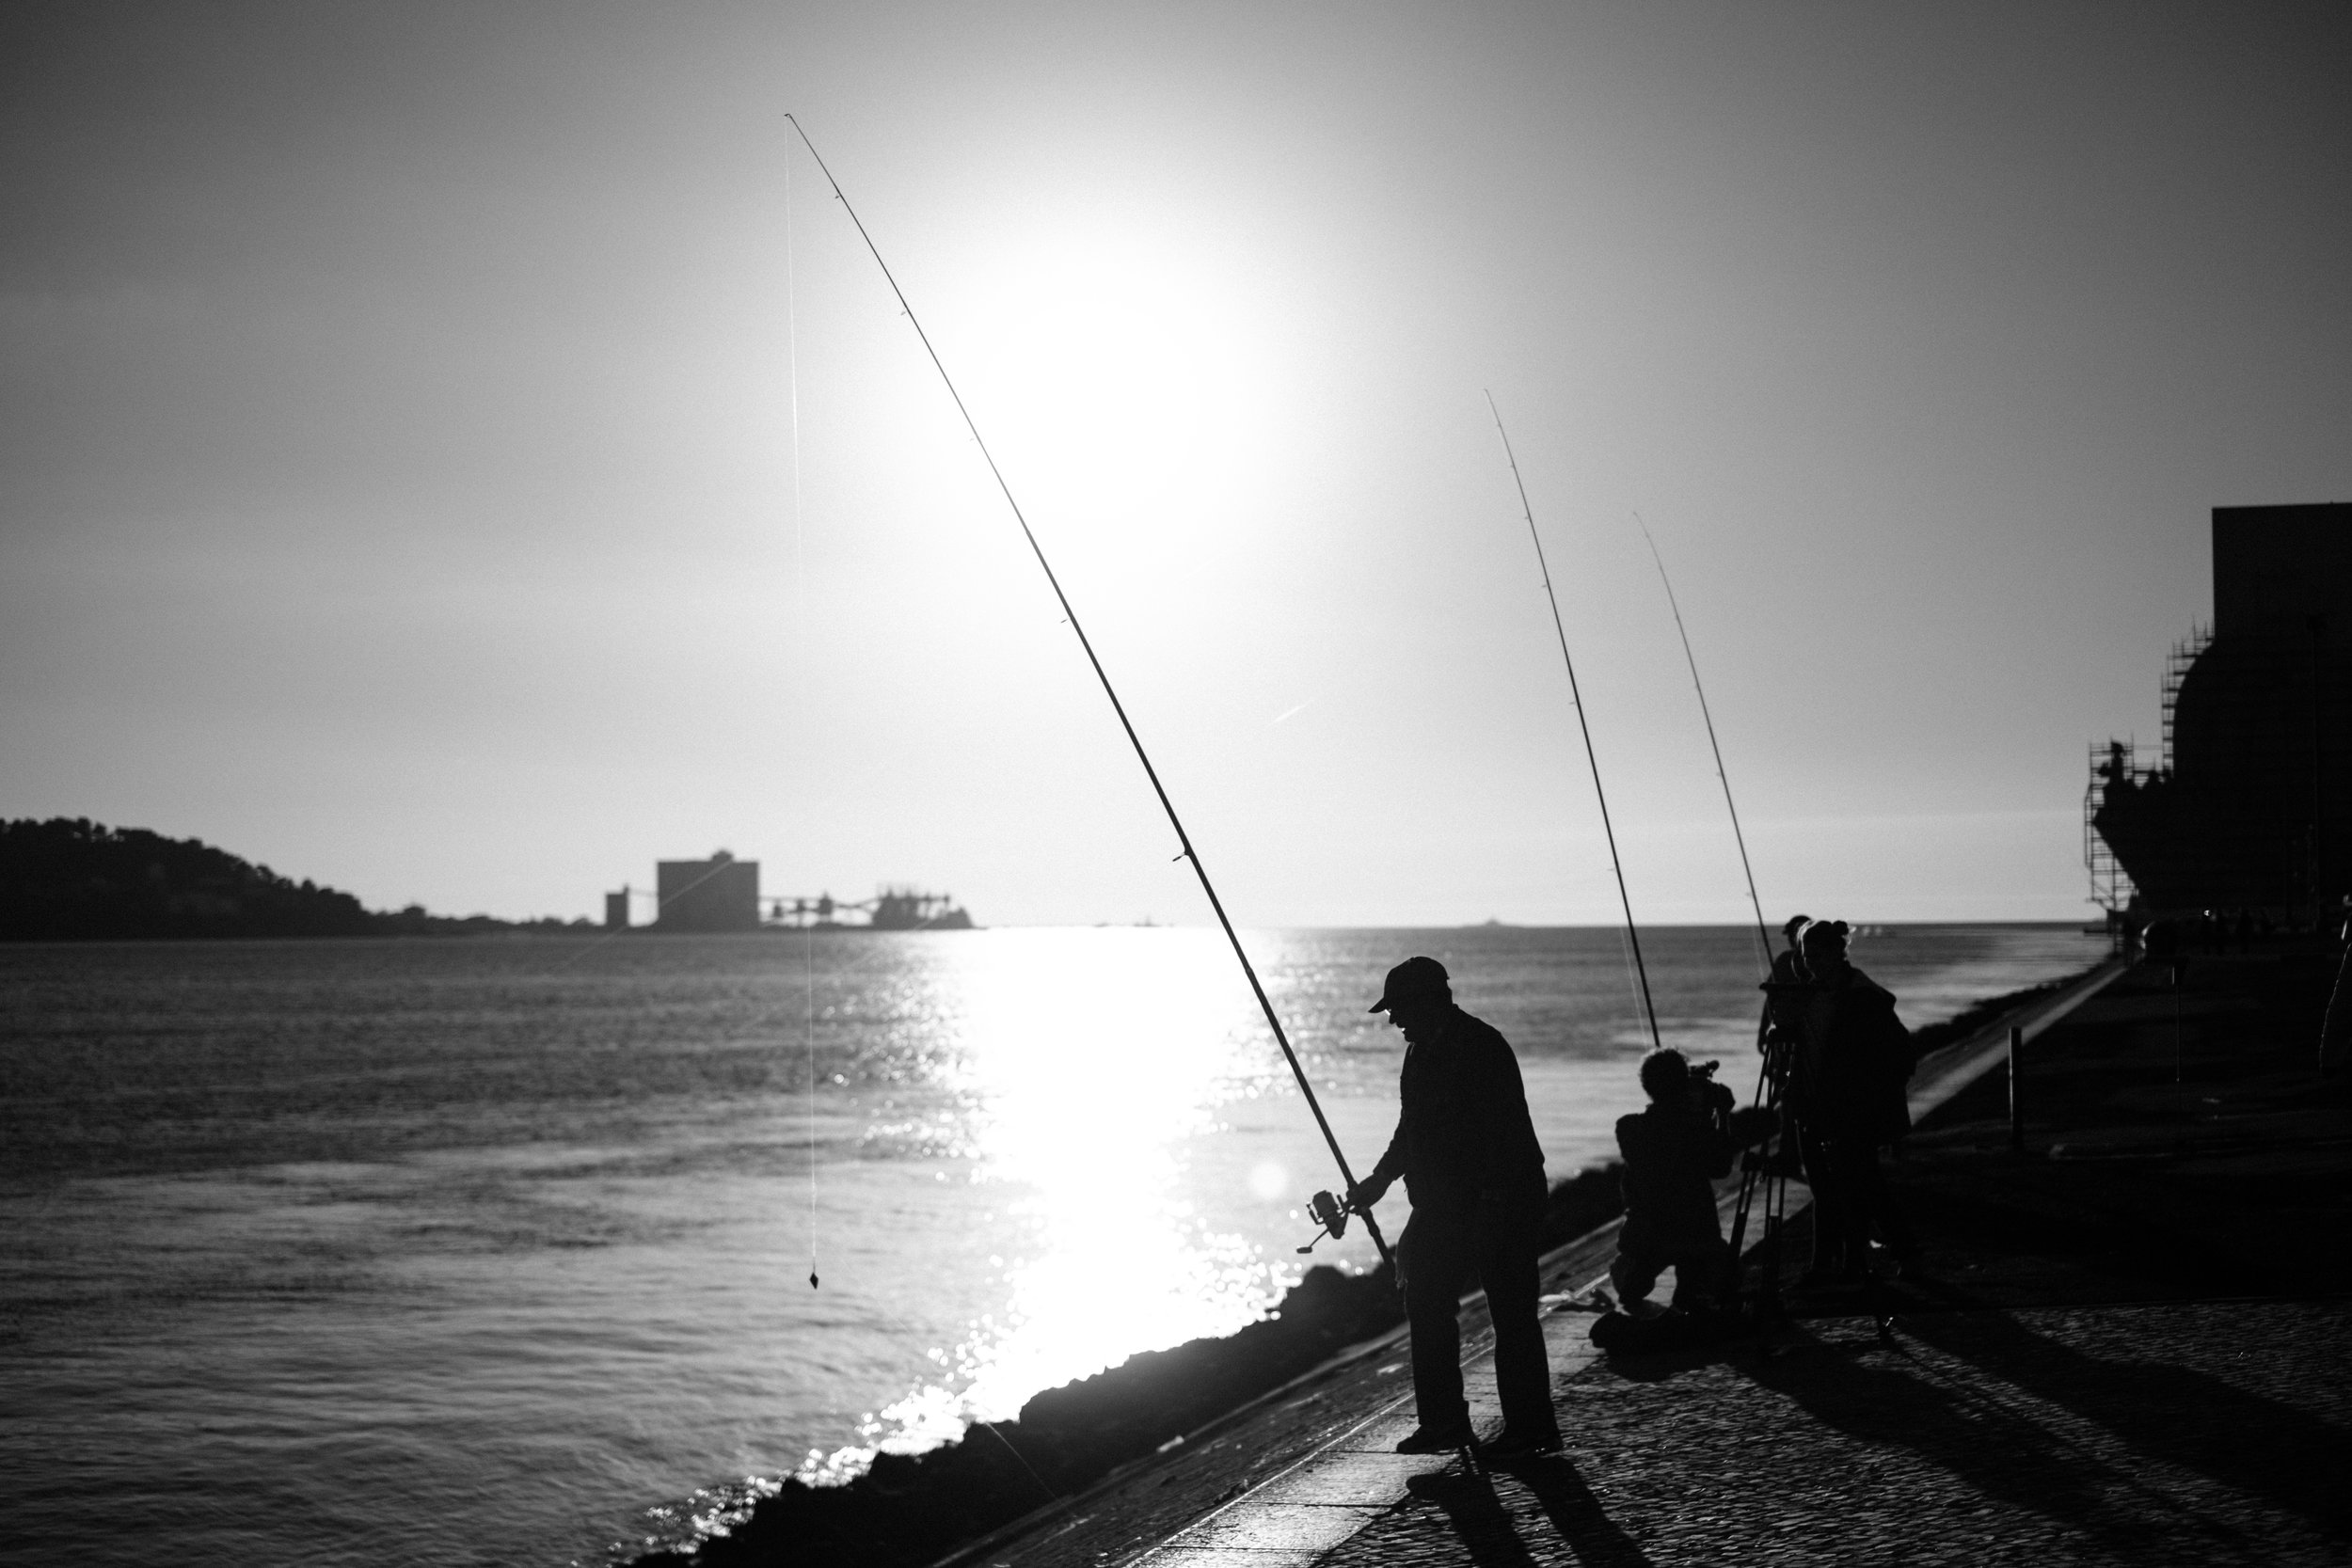 The men are fishing along the harbour in Lisbon enjoying the early December sun